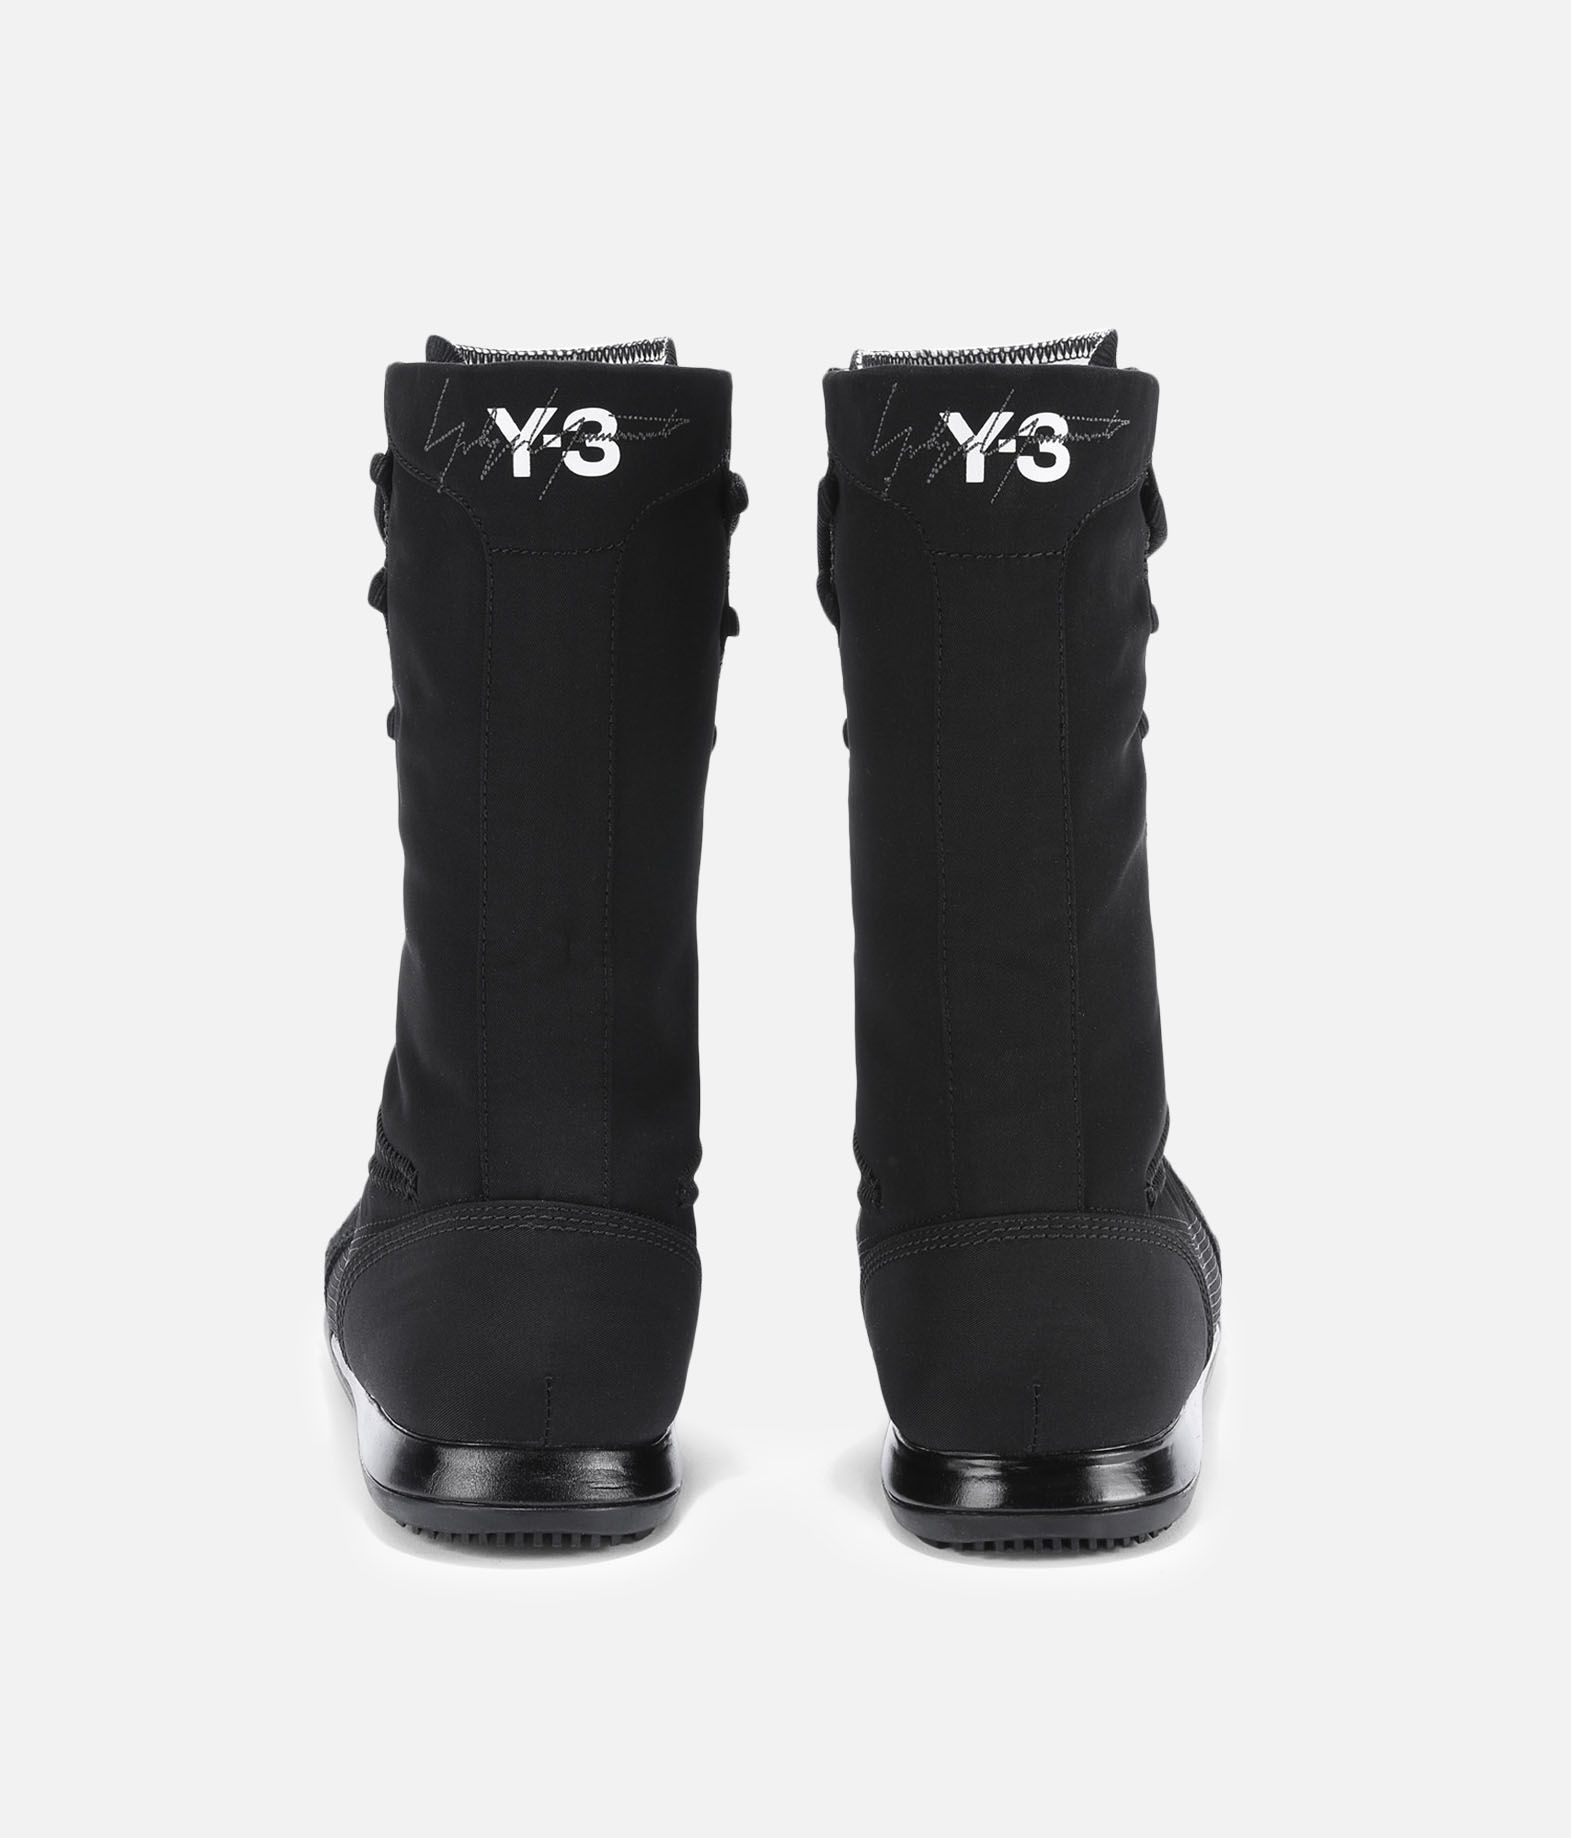 Y-3 Y-3 Yuuki High-top sneakers Woman e